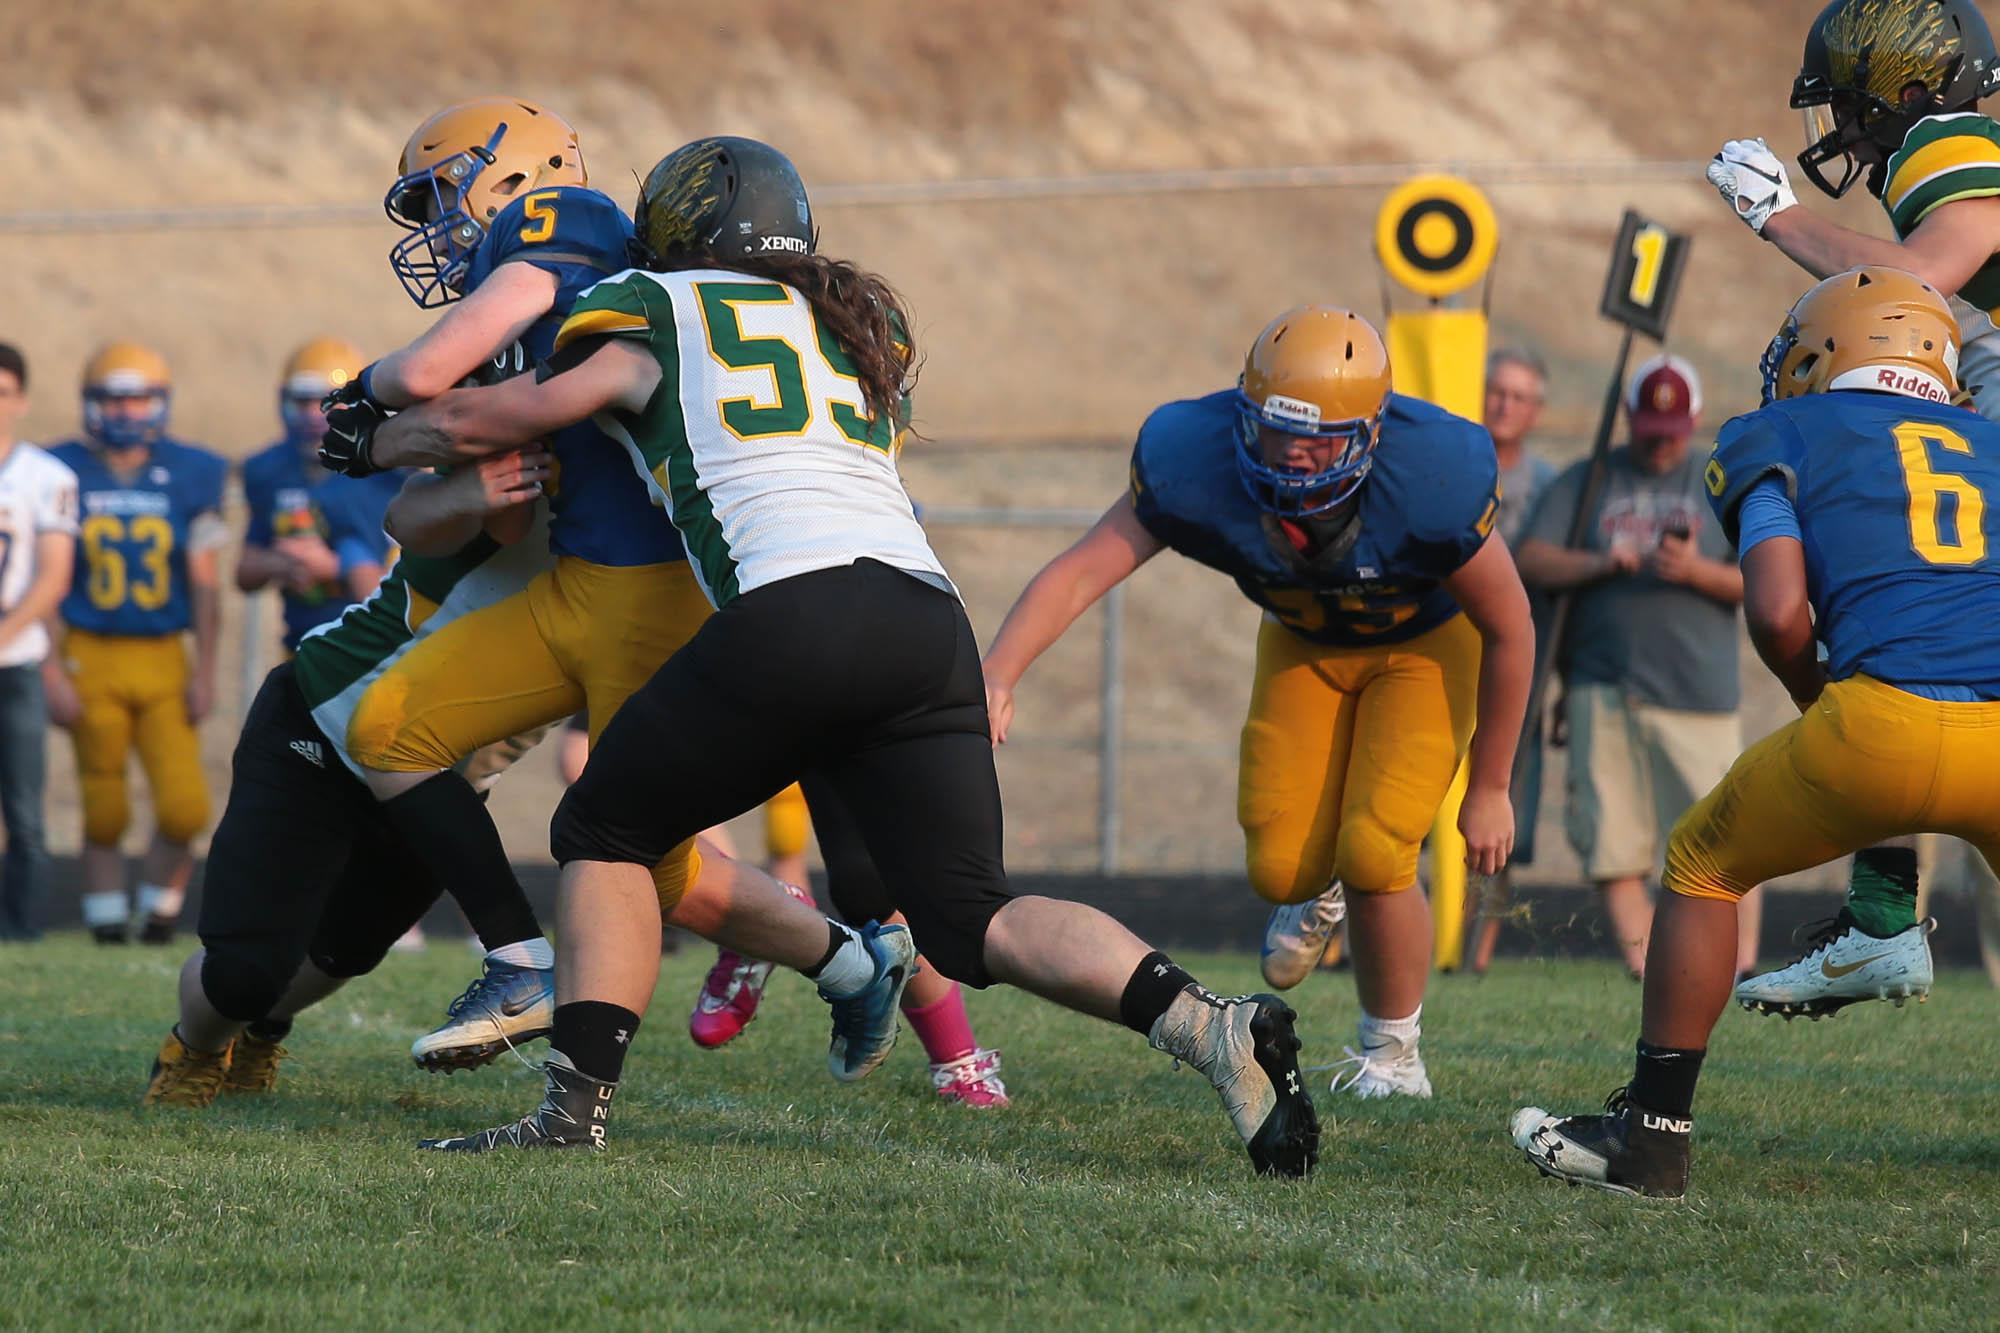 Pre-Season Football Jamboree at North Valley High School (// Photos by:  LARRY STAUTH JR)